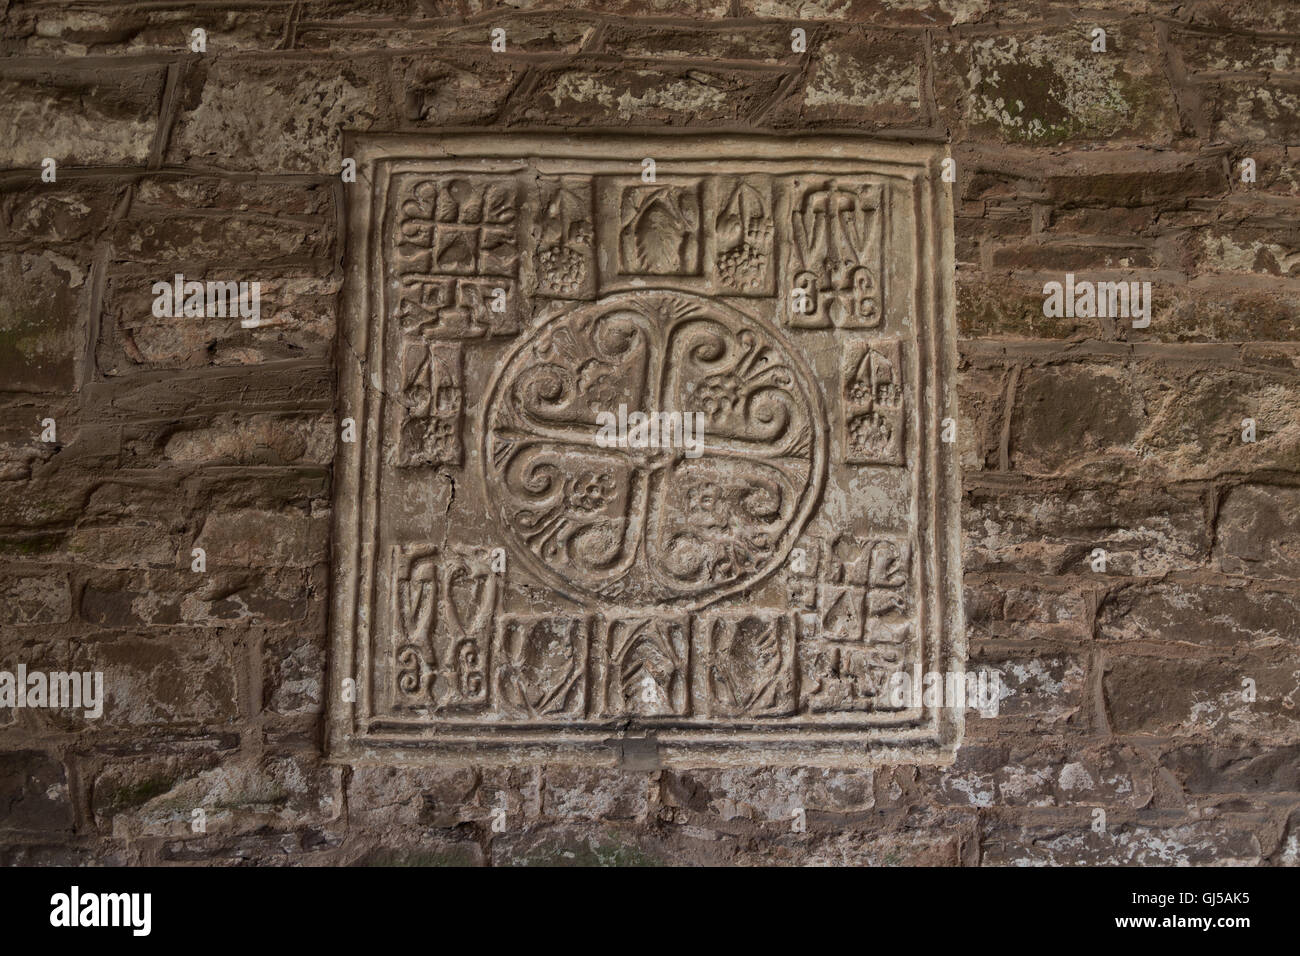 A wall tile with many symbols at St Martin's 'crooked' church in Cwmyoy, near Abergavenny. - Stock Image